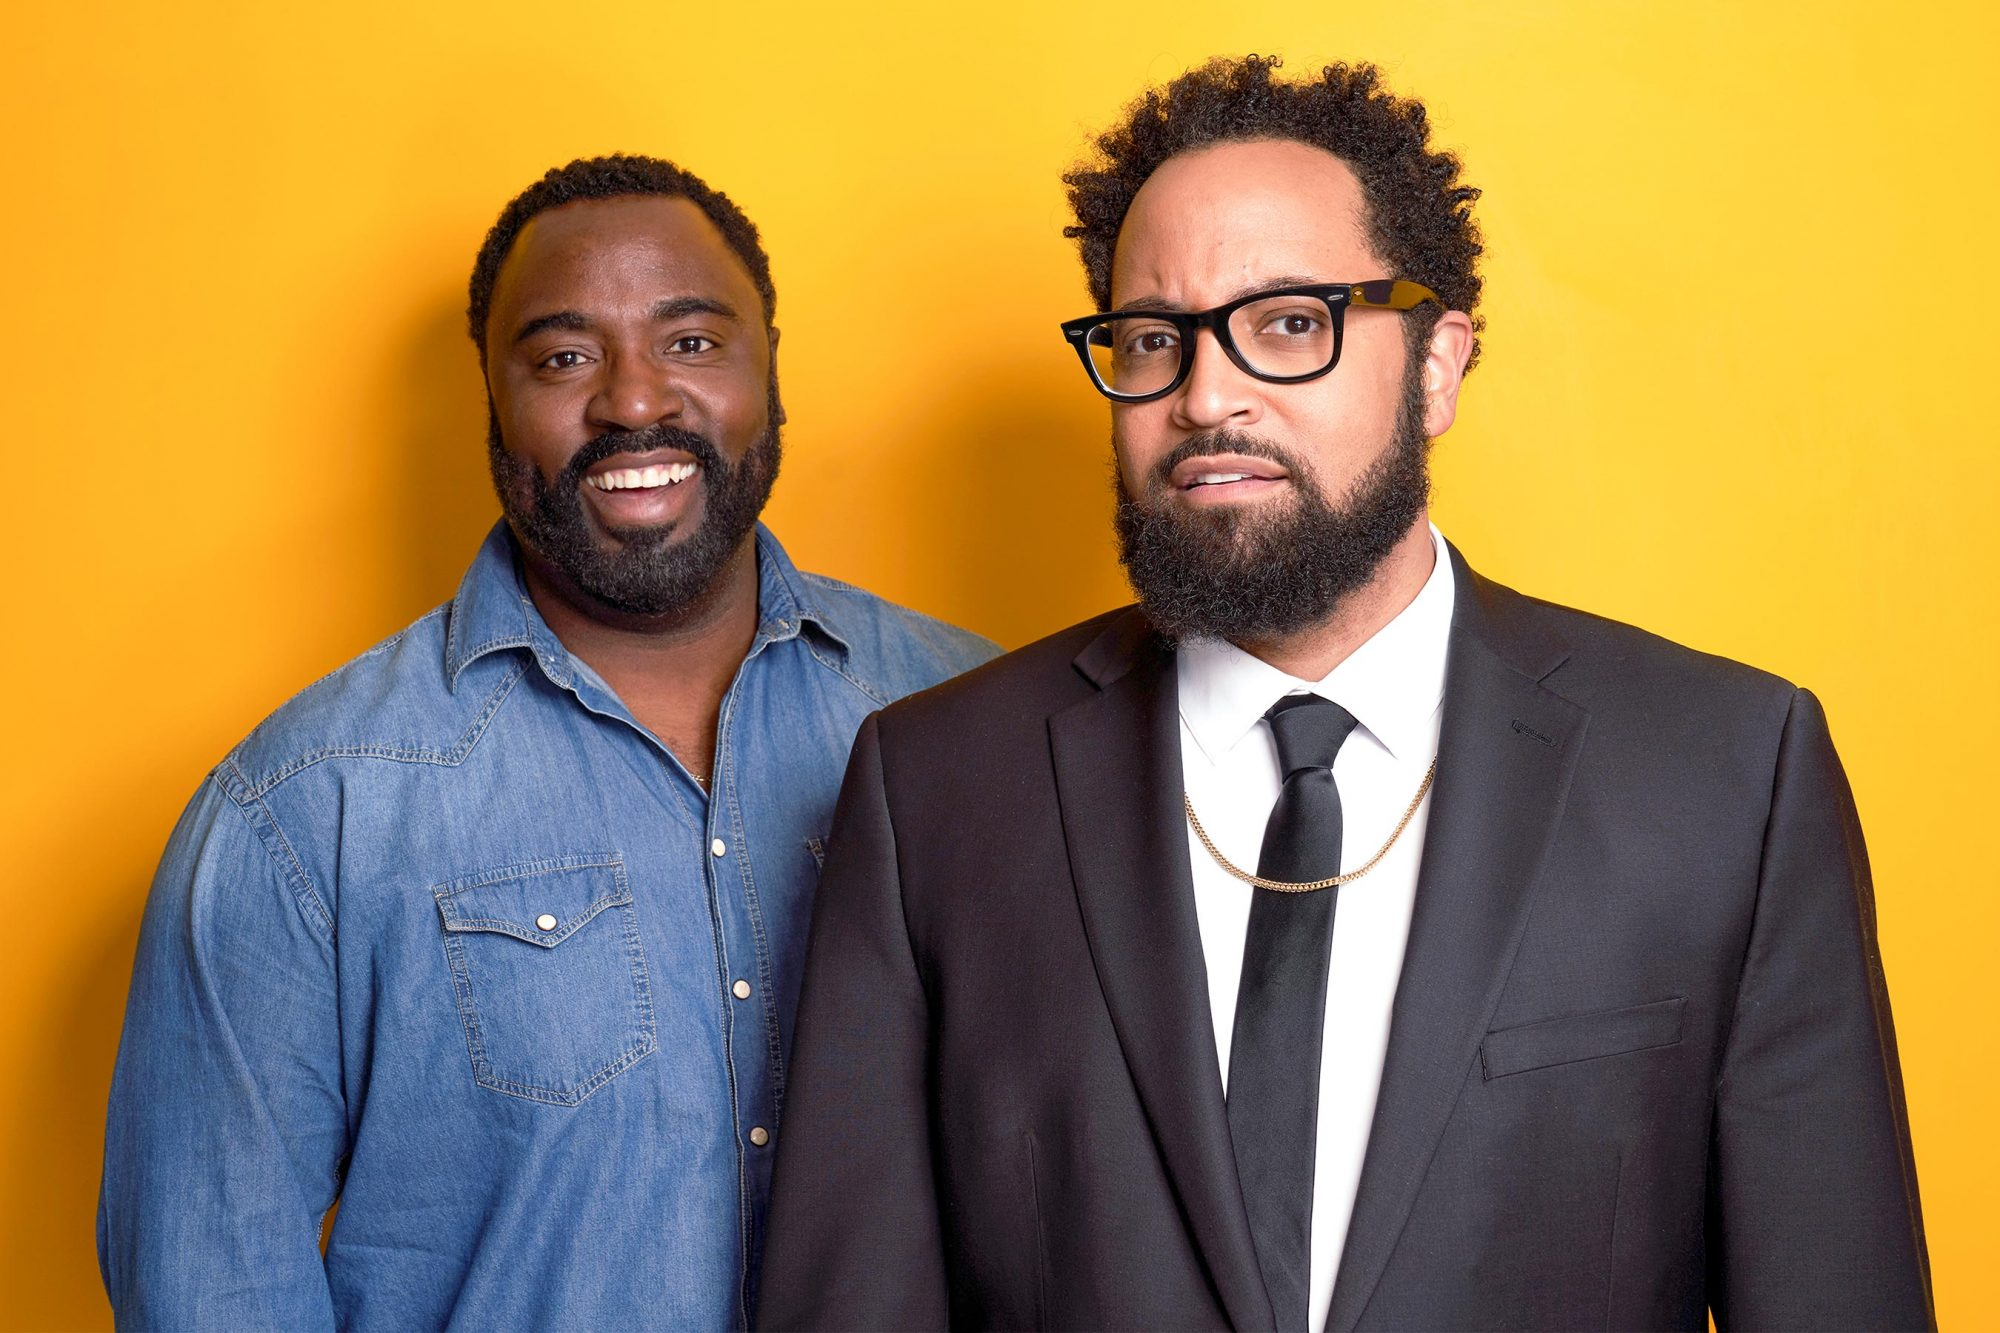 PASADENA, CALIFORNIA - FEBRUARY 11: Bashir Salahuddin (L) and Diallo Riddle of Comedy Central's 'South Side' pose for a portrait during the 2019 Winter TCA at The Langham Huntington, Pasadena on February 11, 2019 in Pasadena, California. (Photo by Corey Nickols/Getty Images)